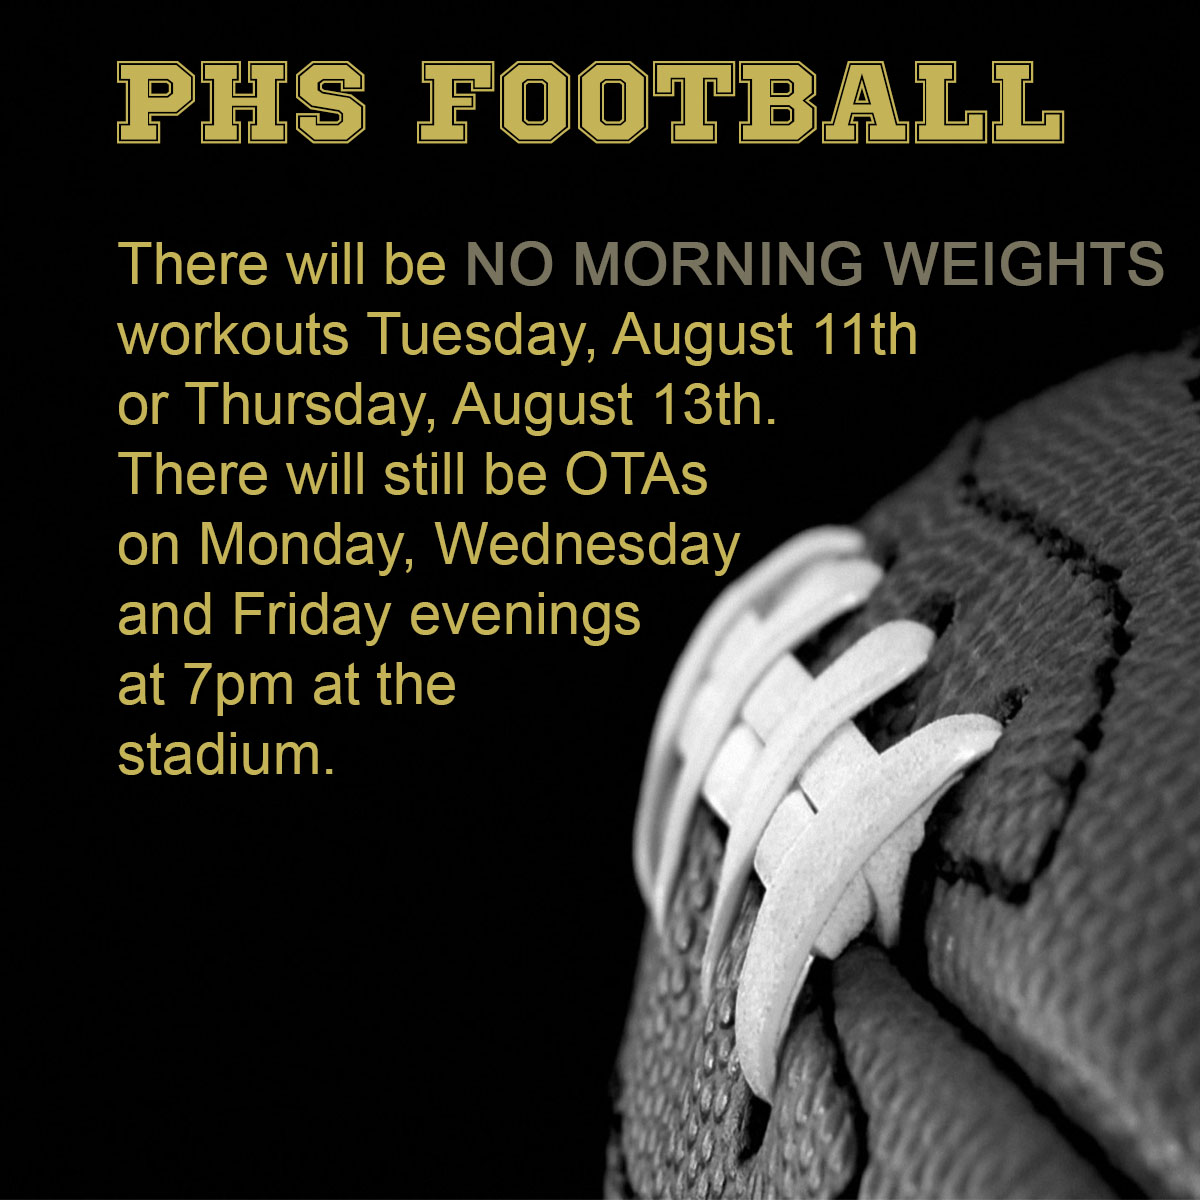 No PHS Football Weights Tuesday and Thursday Morning